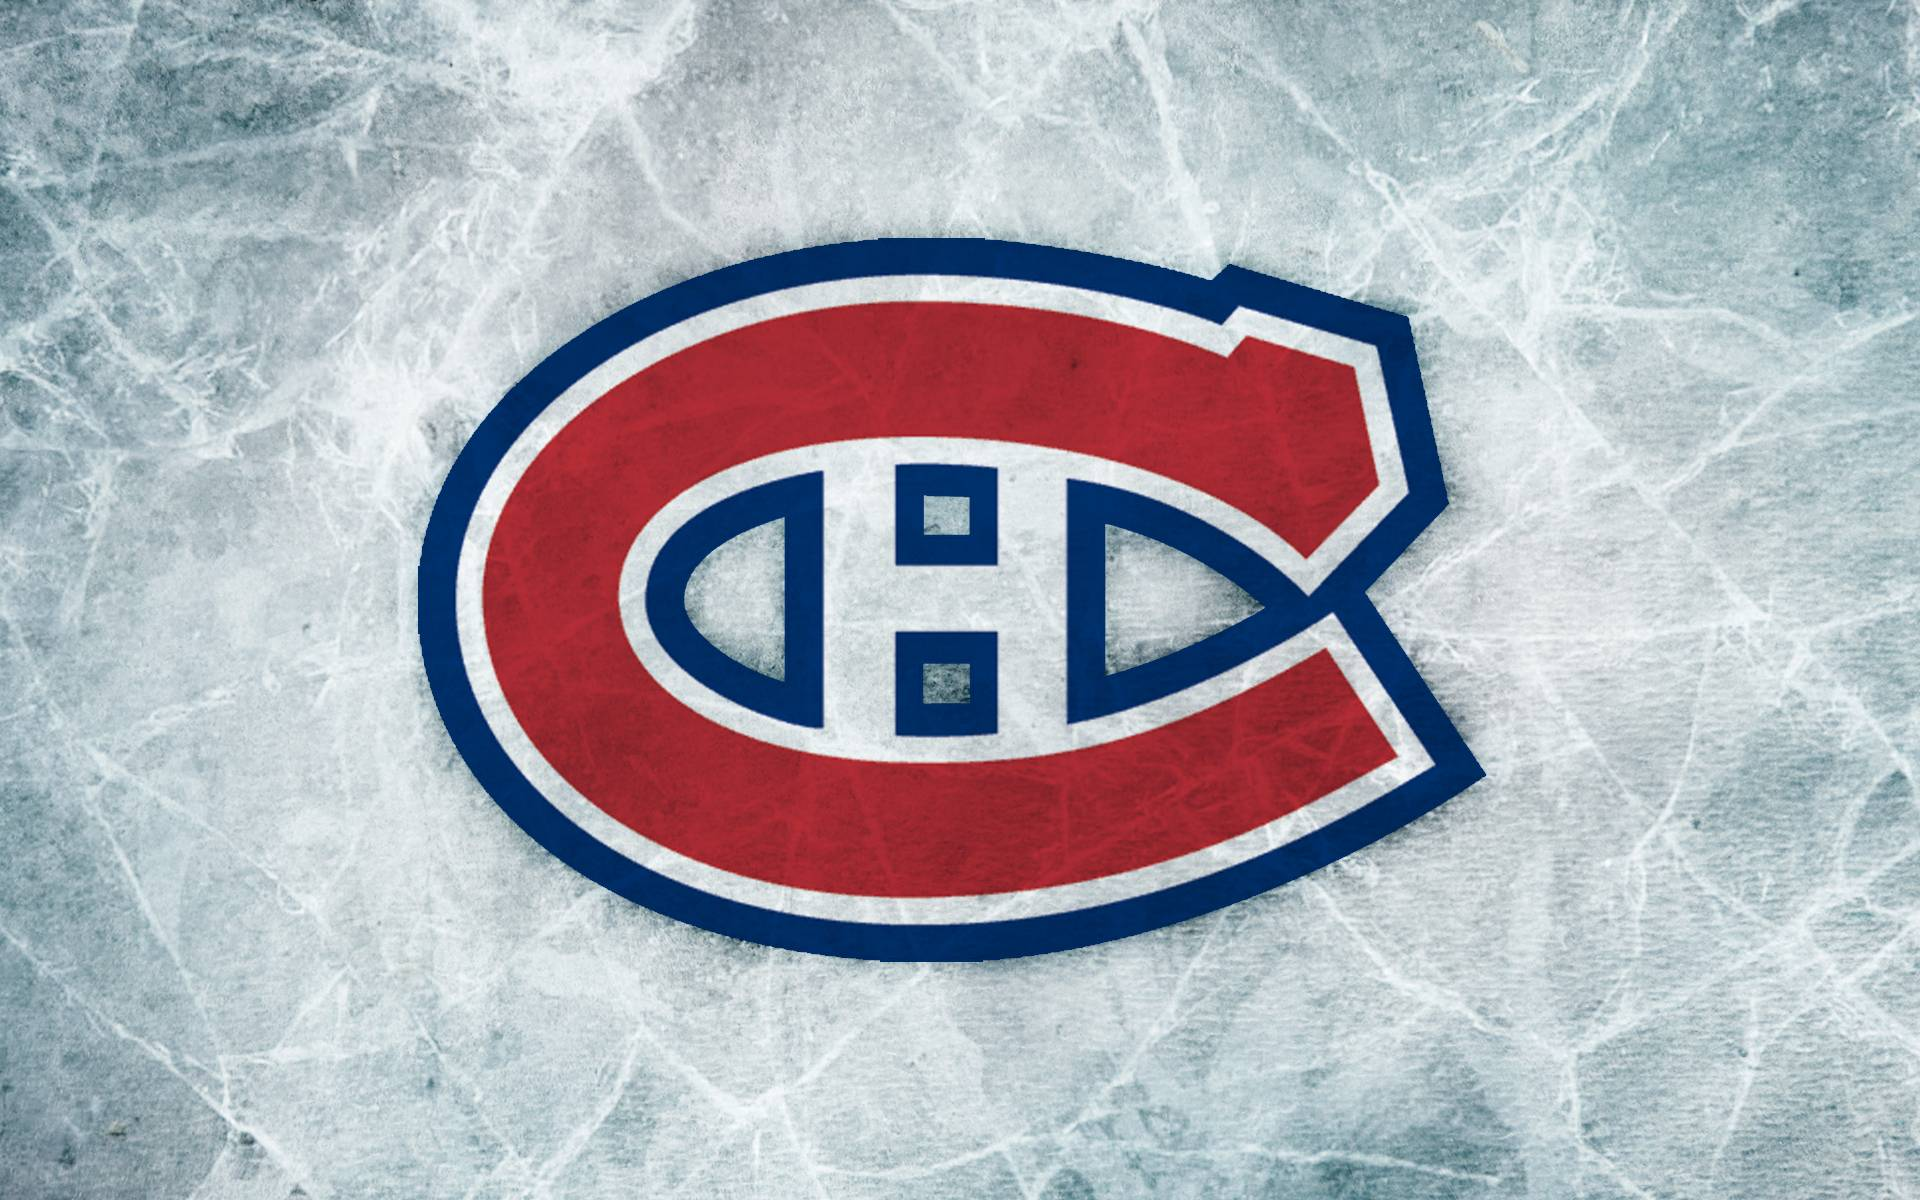 Simple Wallpaper Logo Montreal Canadiens - Montreal-Canadiens-montreal-canadiens-40371151-1920-1200  Graphic_194999.jpg